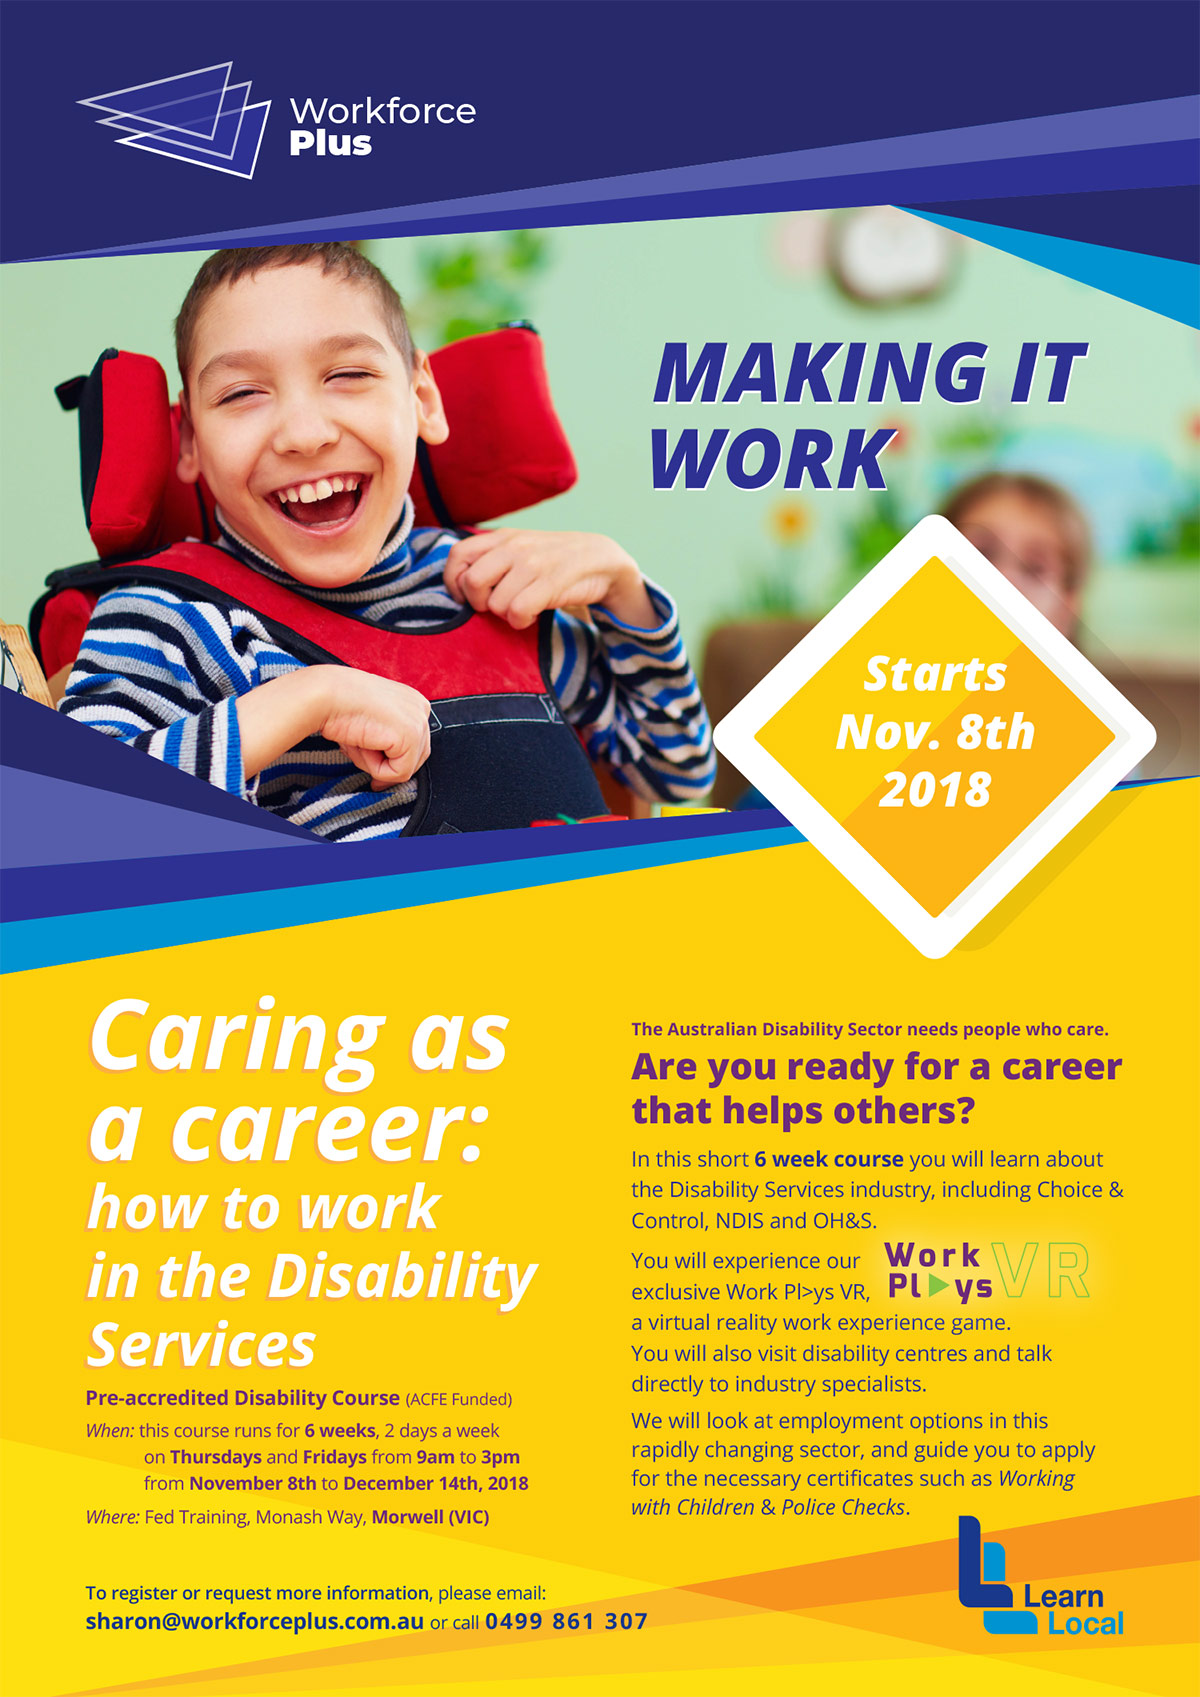 Learn Local - Disability Services course